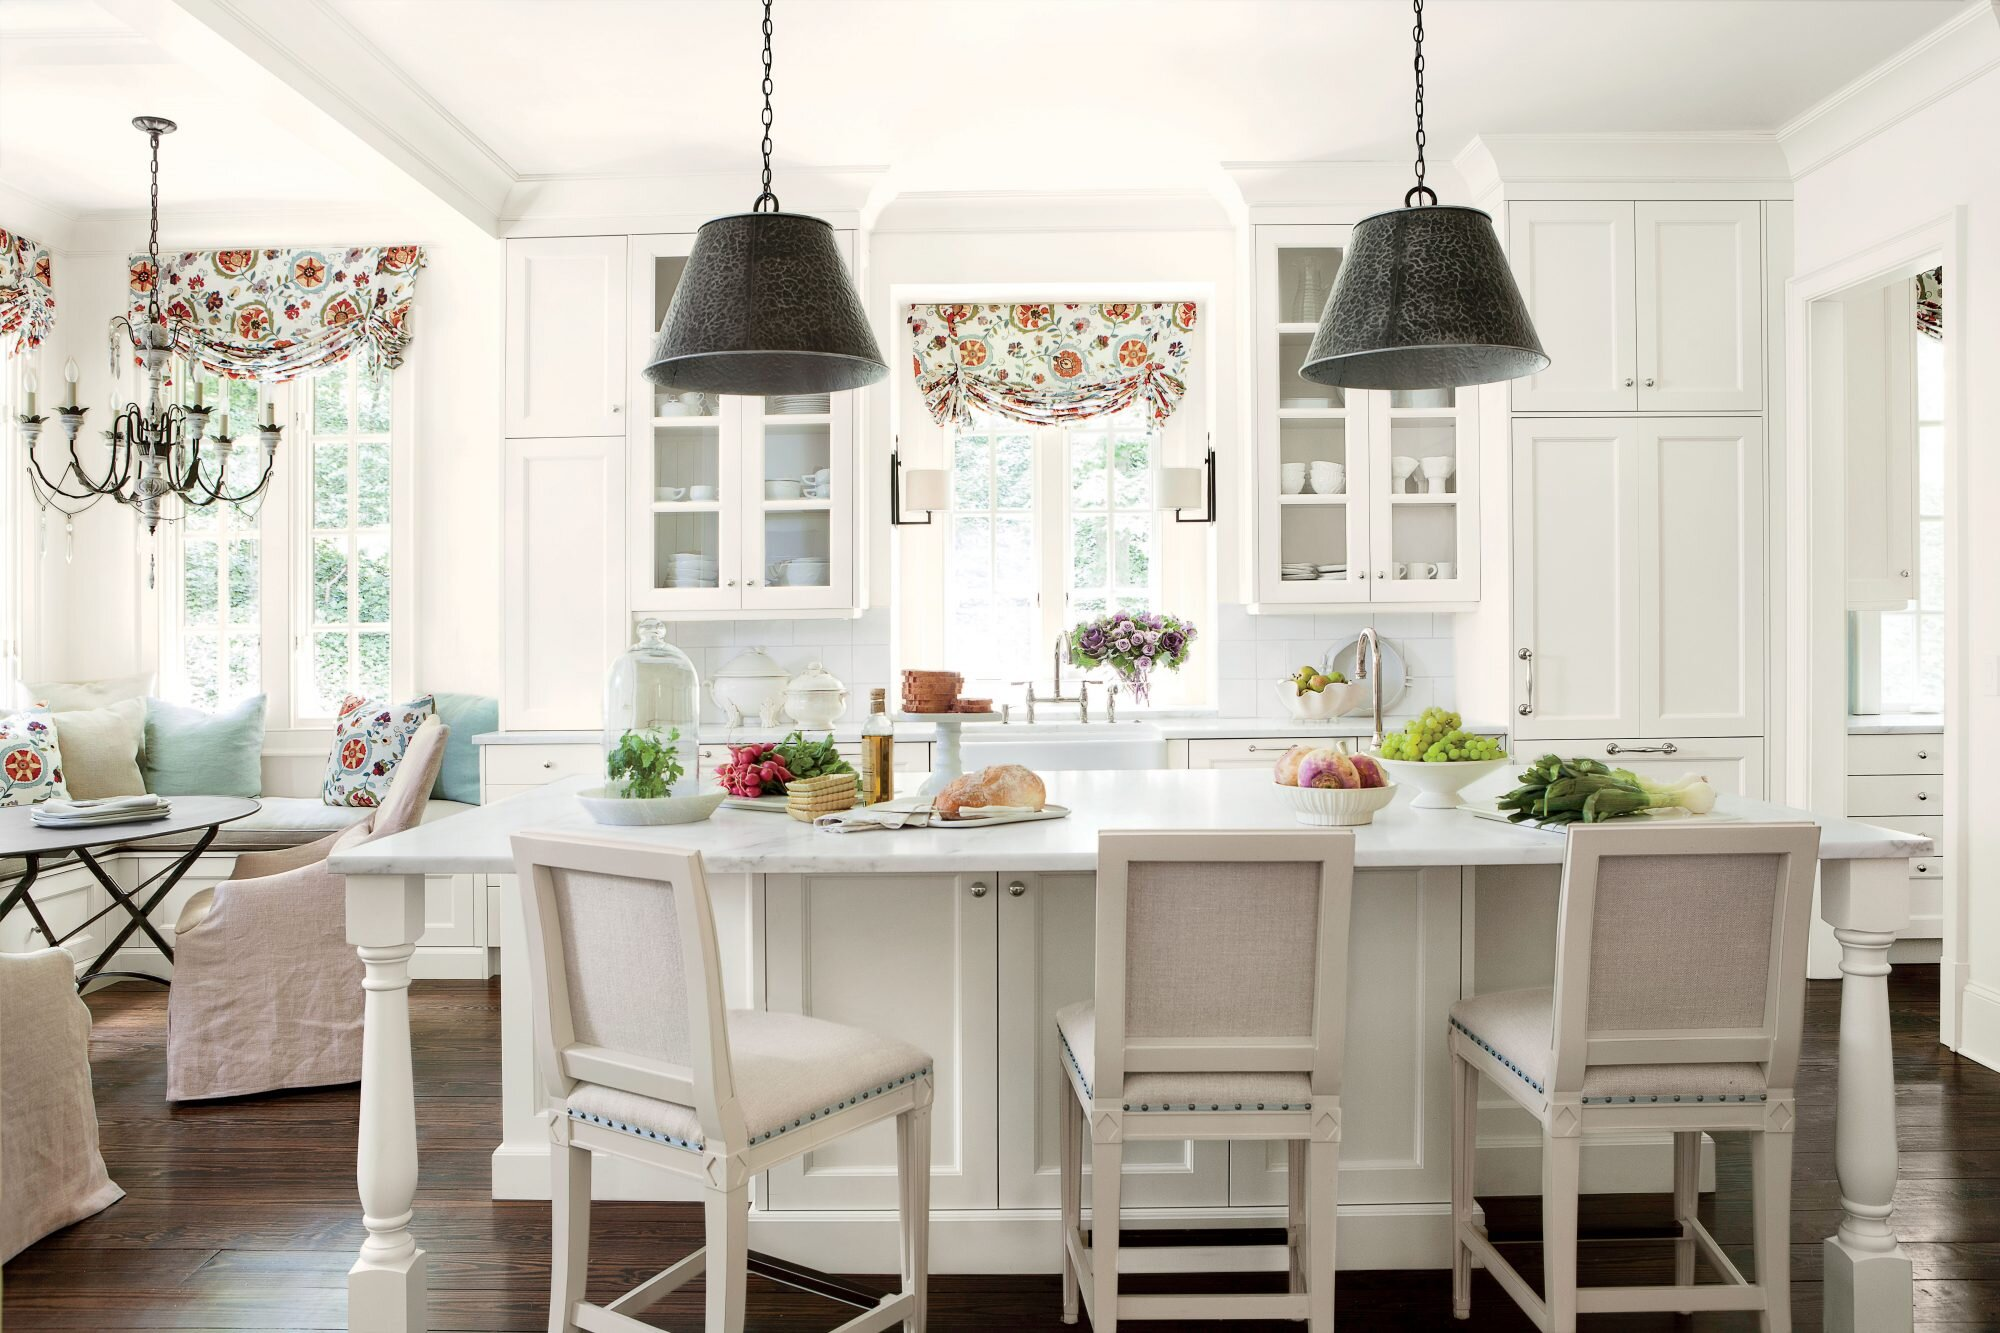 The Best White Paint for Your Kitchen | Southern Living